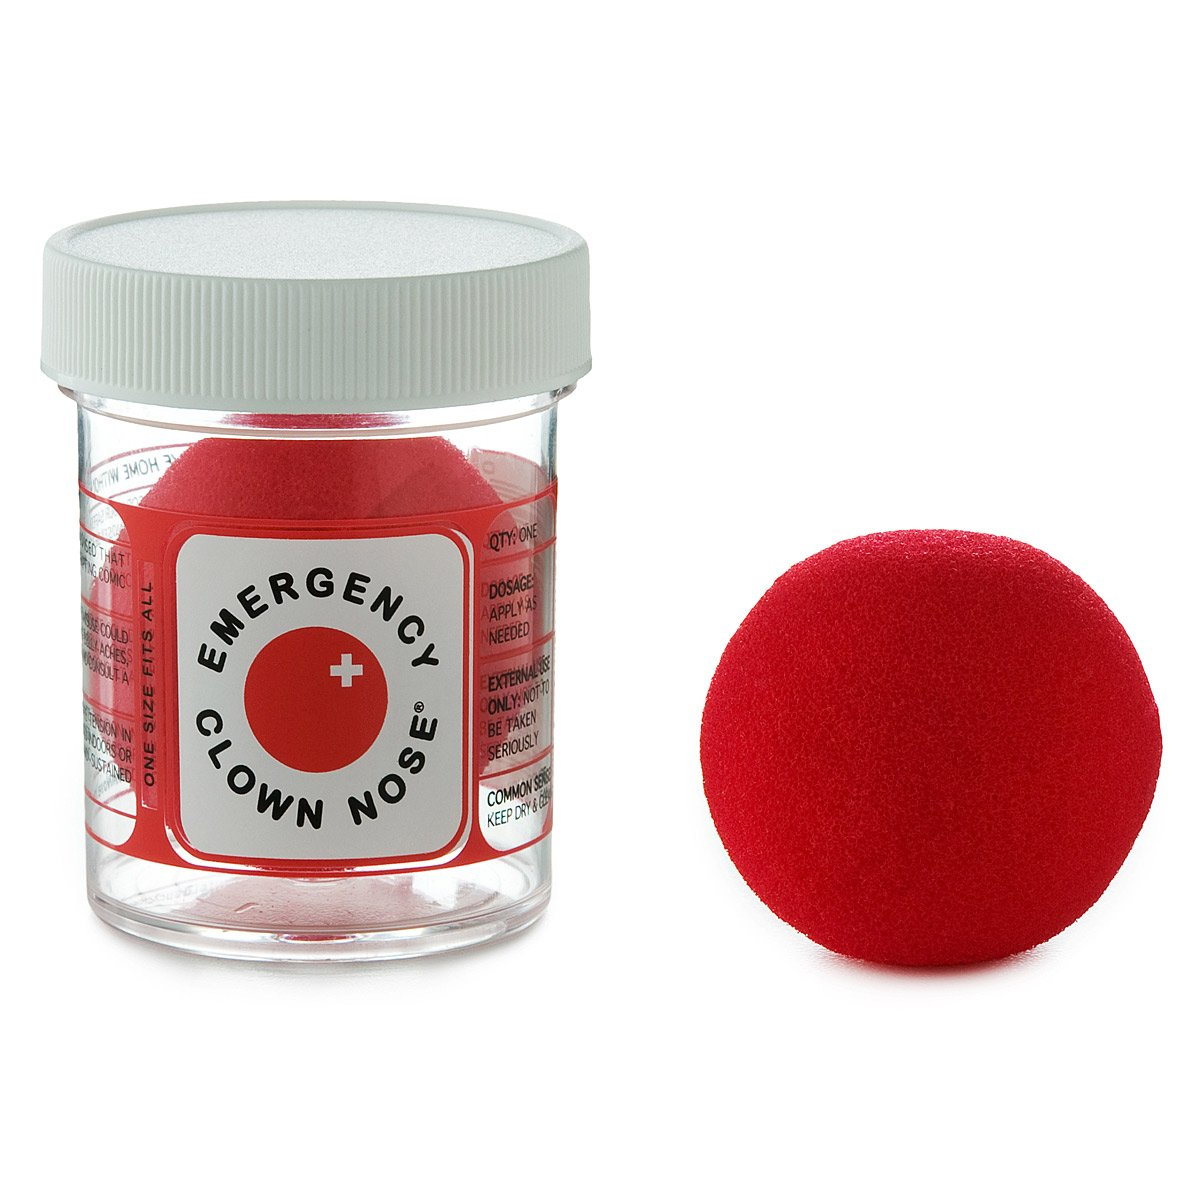 Emergency Clown Nose-21836